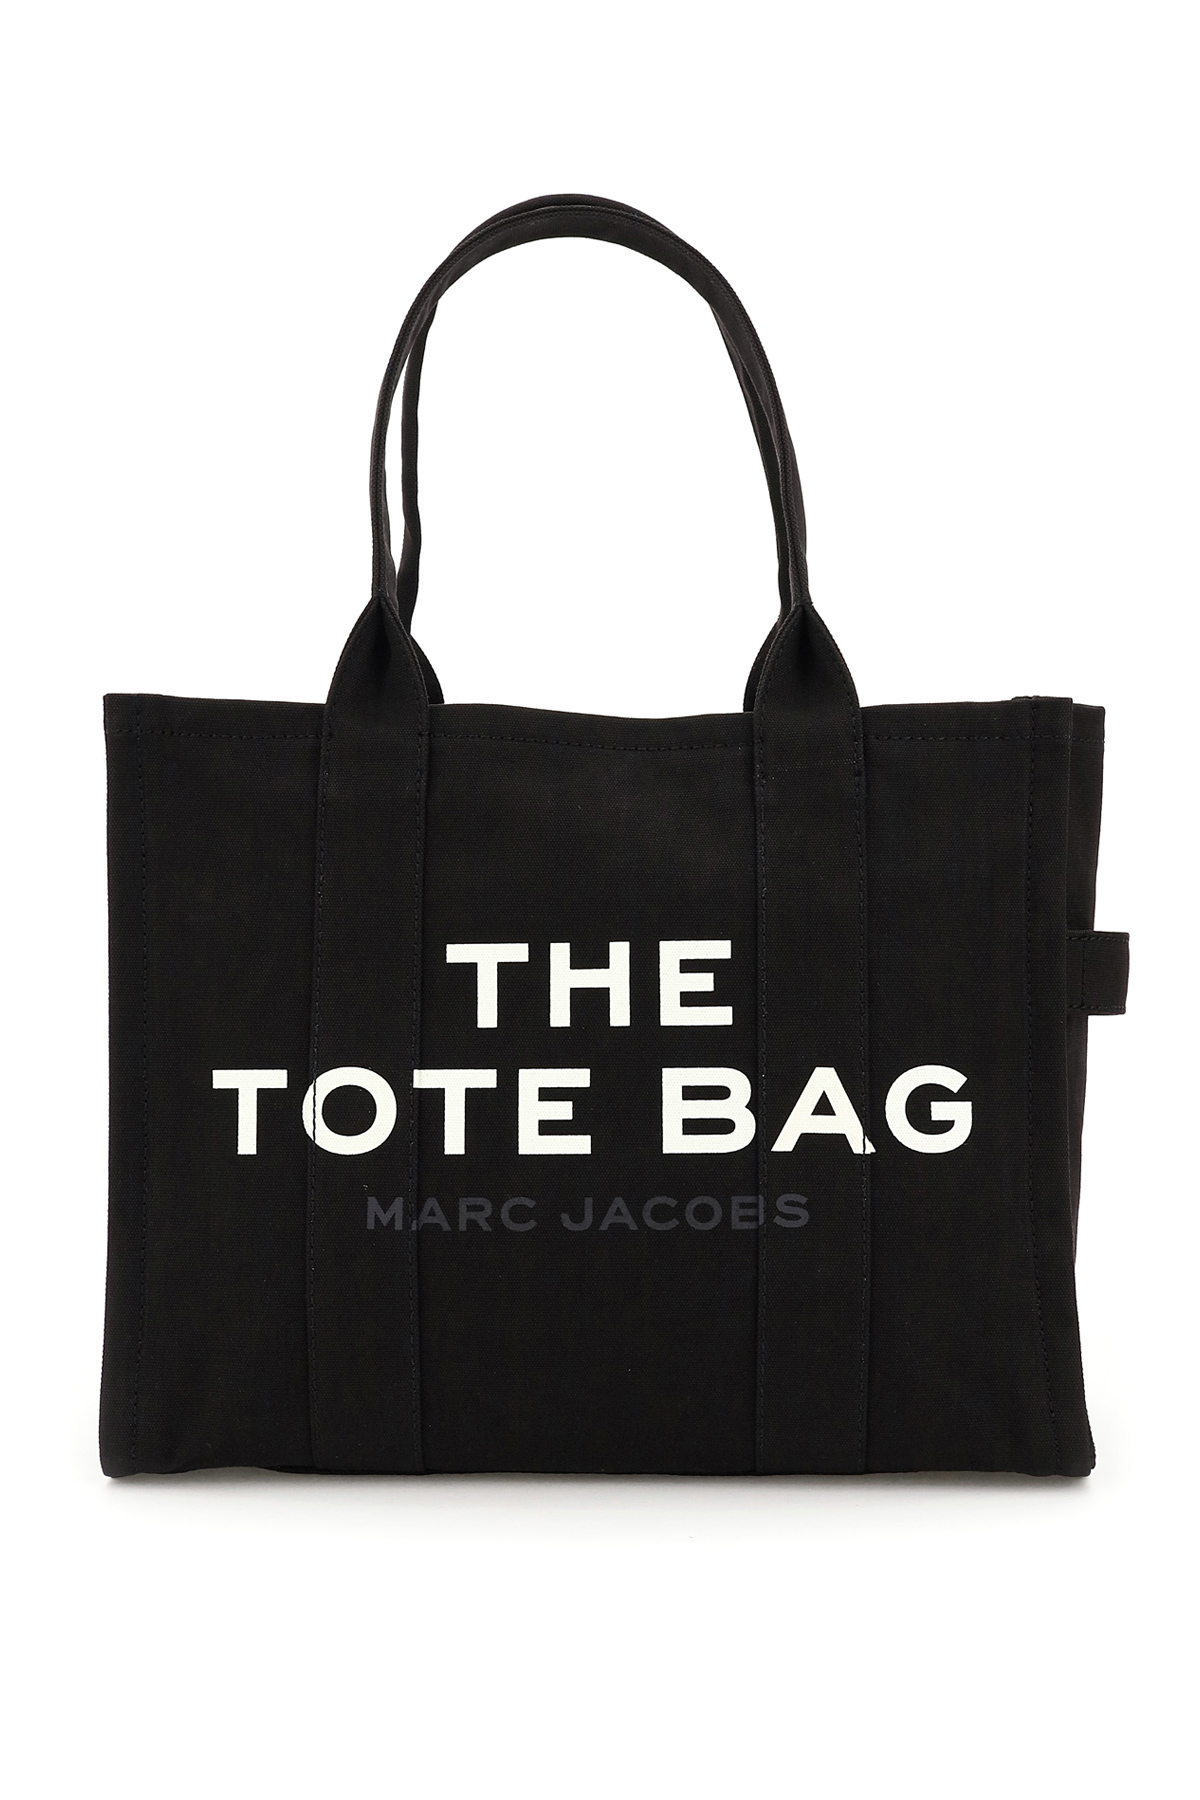 MARC JACOBS (THE) THE LARGE TRAVELER TOTE BAG OS Black, White Cotton